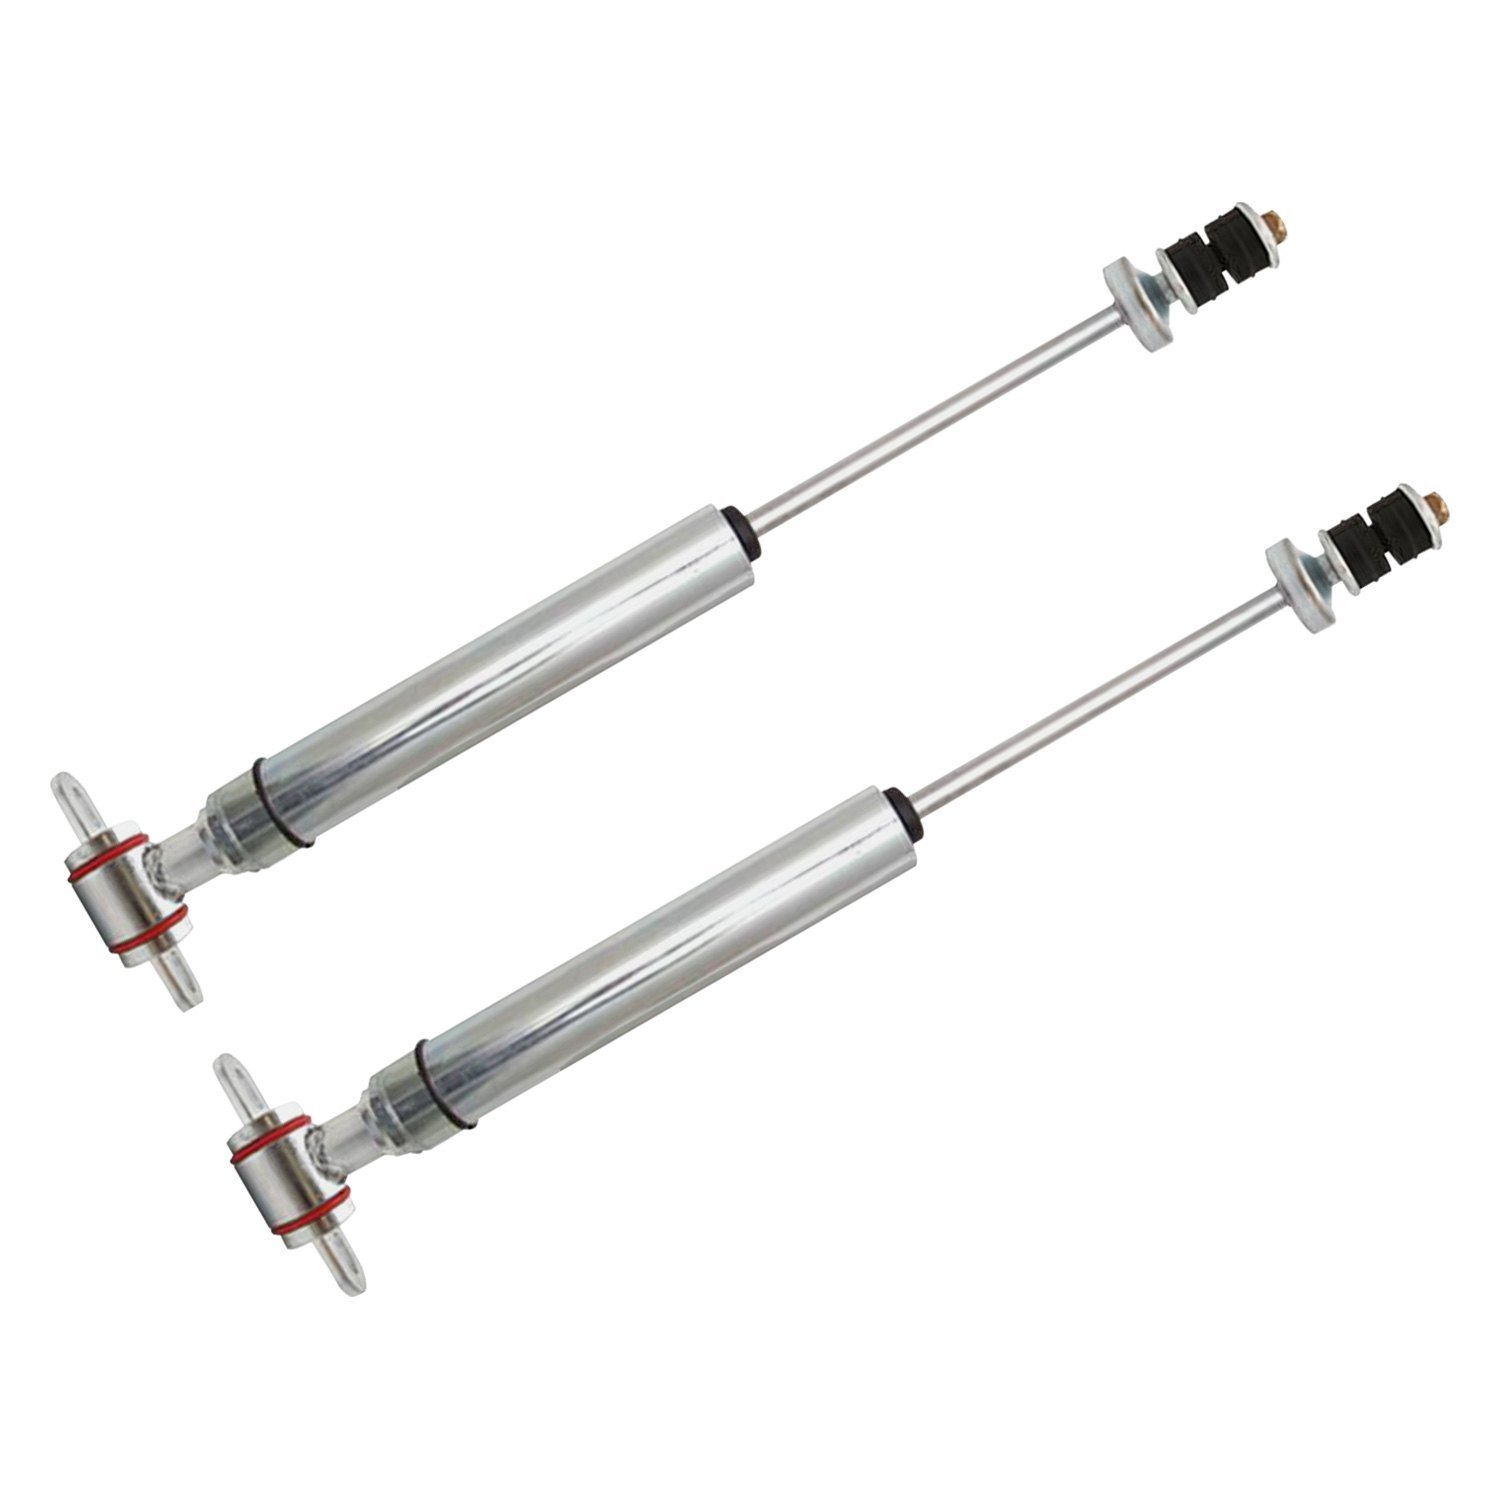 For Chevy S10 1982-1993 Helix Racing Front Shock Absorbers